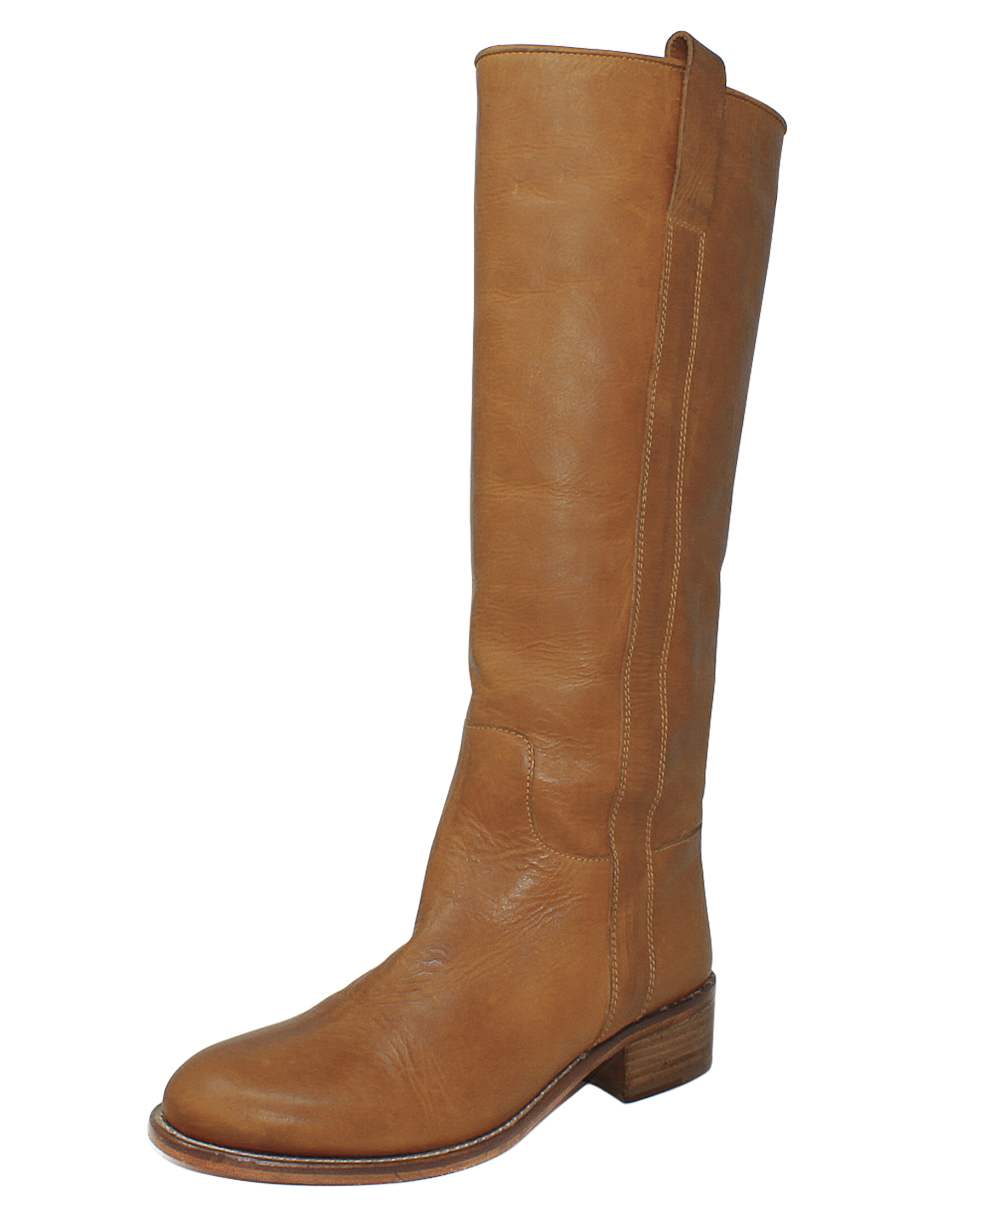 Camperos Honey Original El Campero Italian Leather Boots And Shoes Countryside Boots Handmade